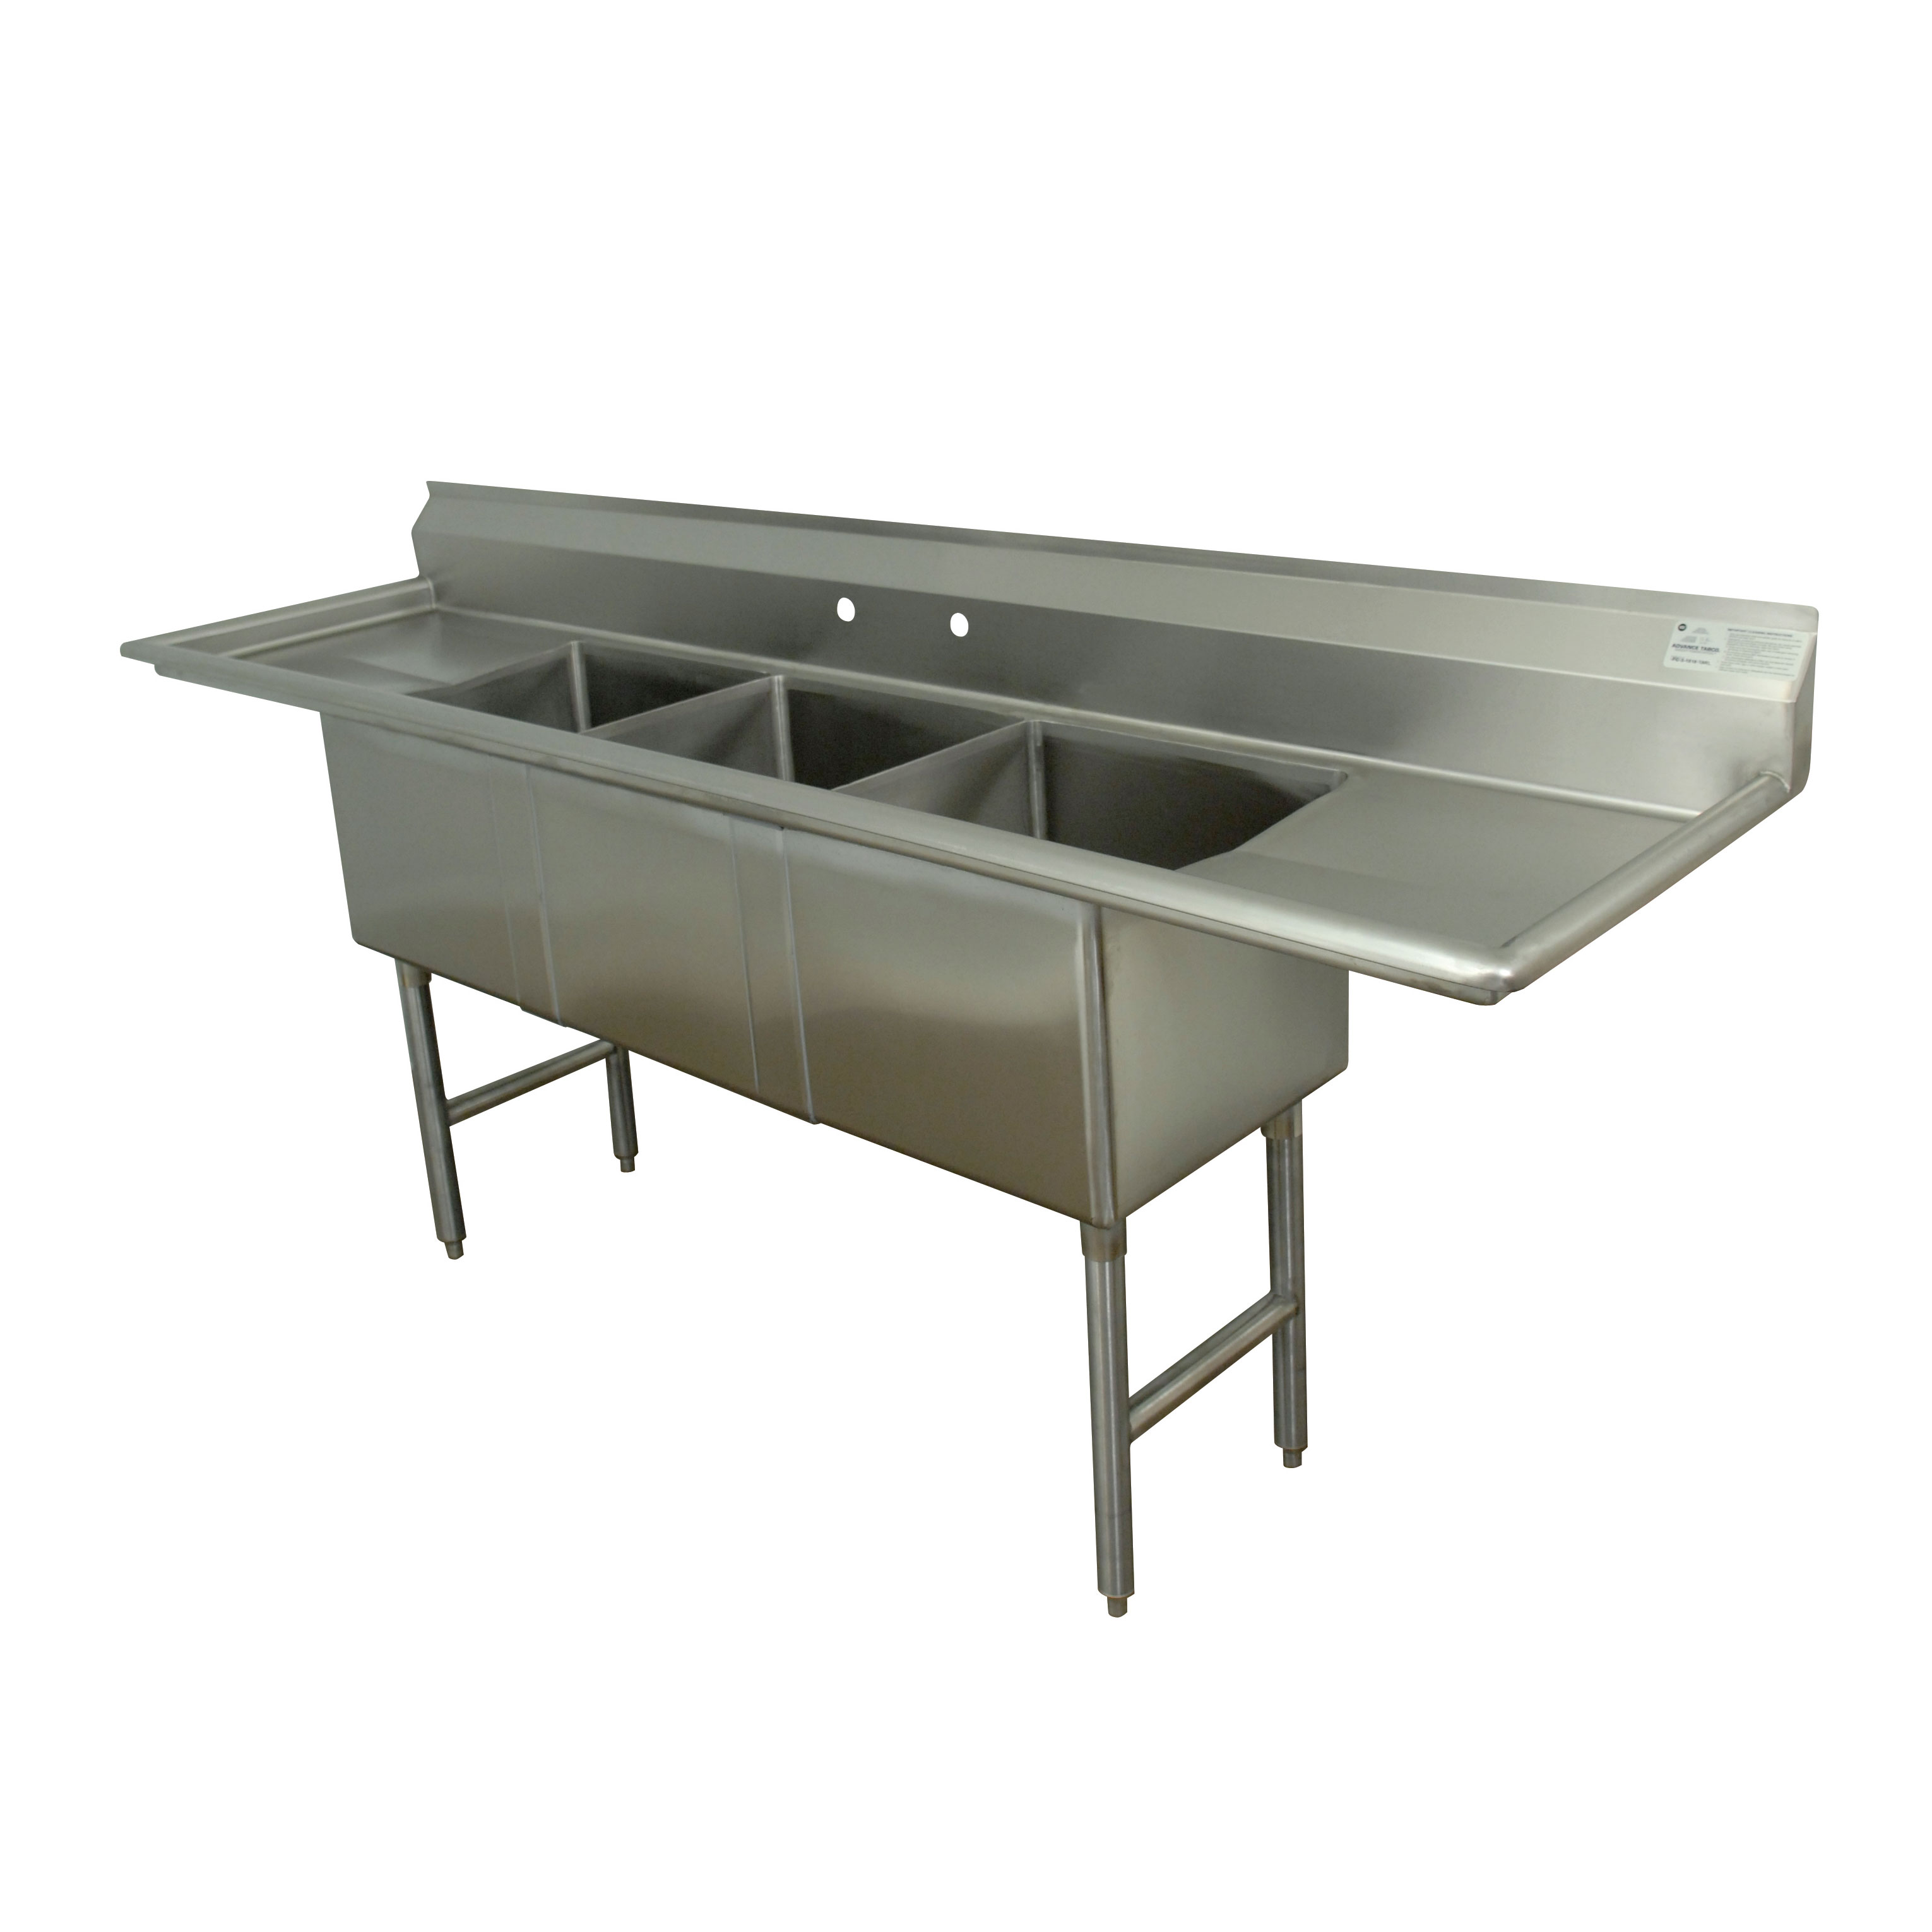 Advance Tabco FC-3-2030-30RL sink, (3) three compartment